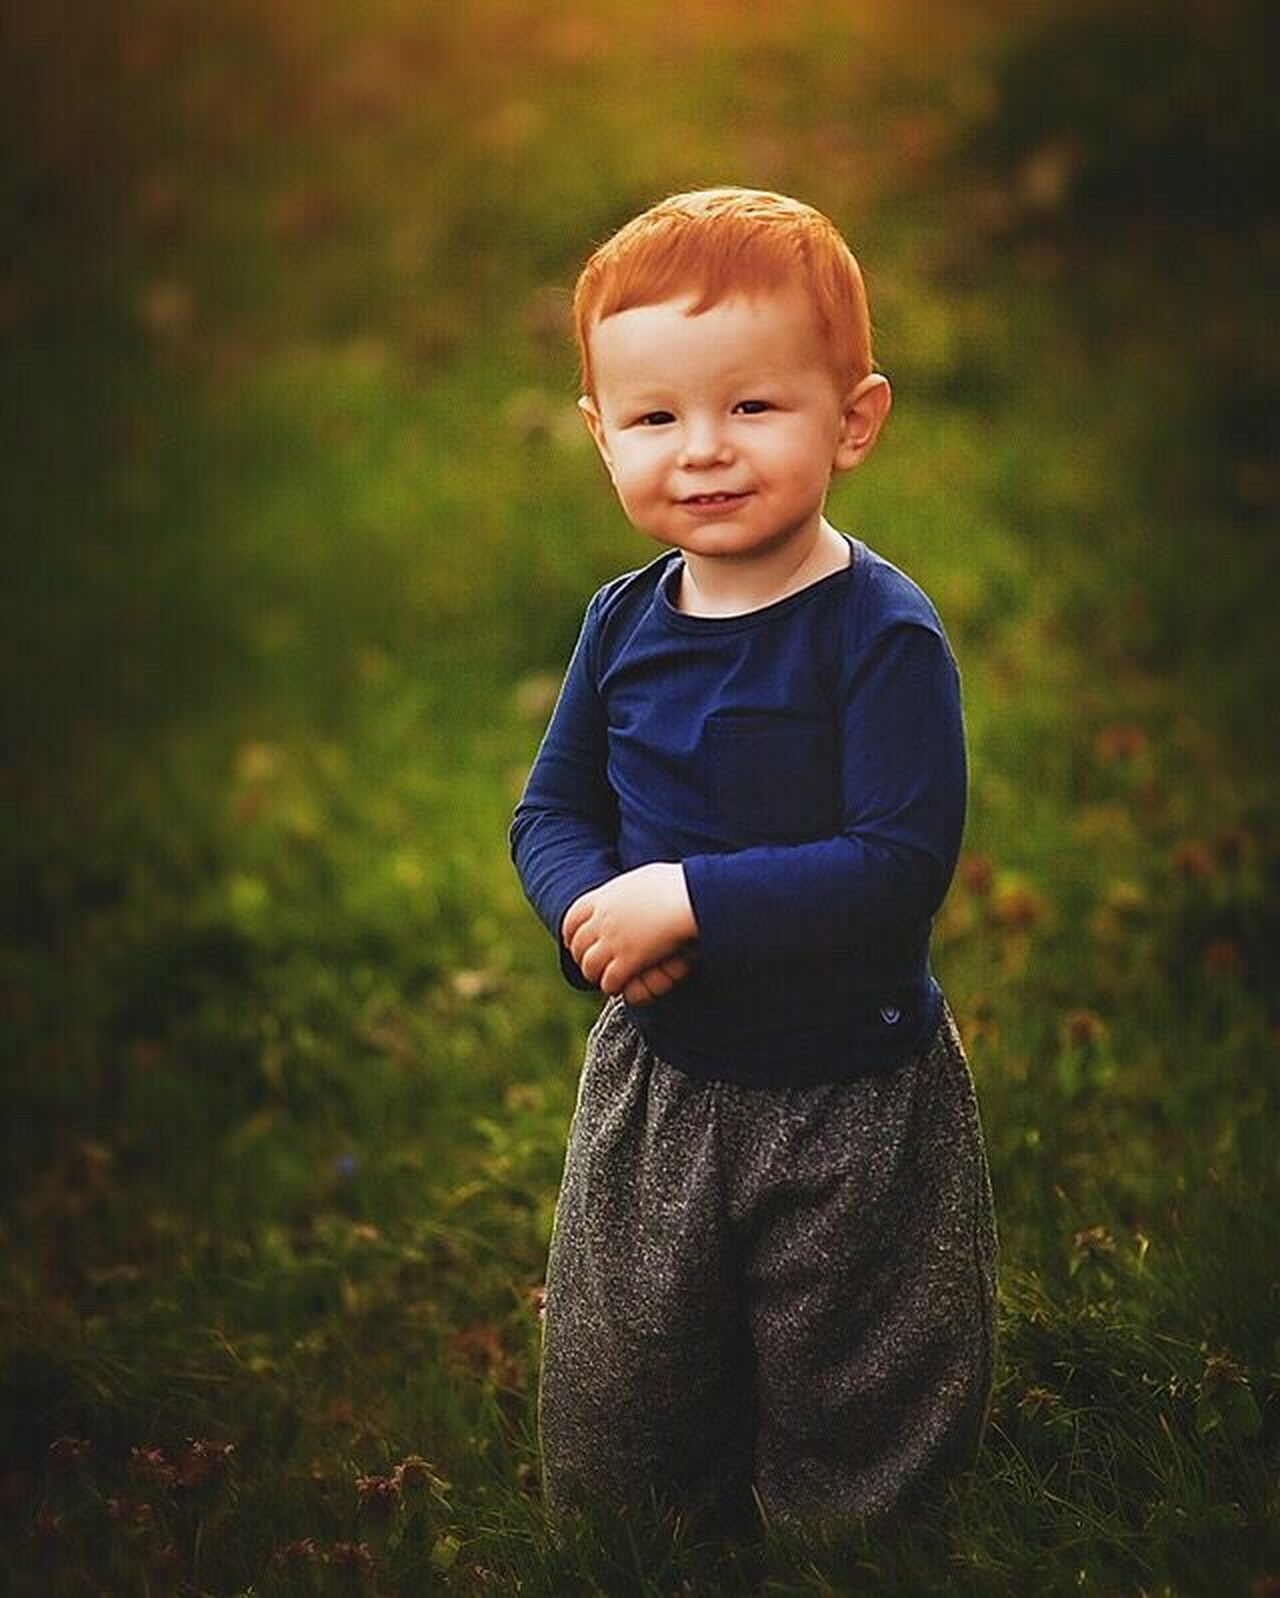 Sweet little Amos! Check This Out Hanging Out Hello World Cheese! Hi! Relaxing Enjoying Life Taking Photos The Portraitist - 2016 EyeEm Awards Beauty Eyes 43 Golden Moments The Human Condition Natural Light Portrait Moments Children's Portraits Children Photography Child Children Portrait Kids Park Childhood Colors Color